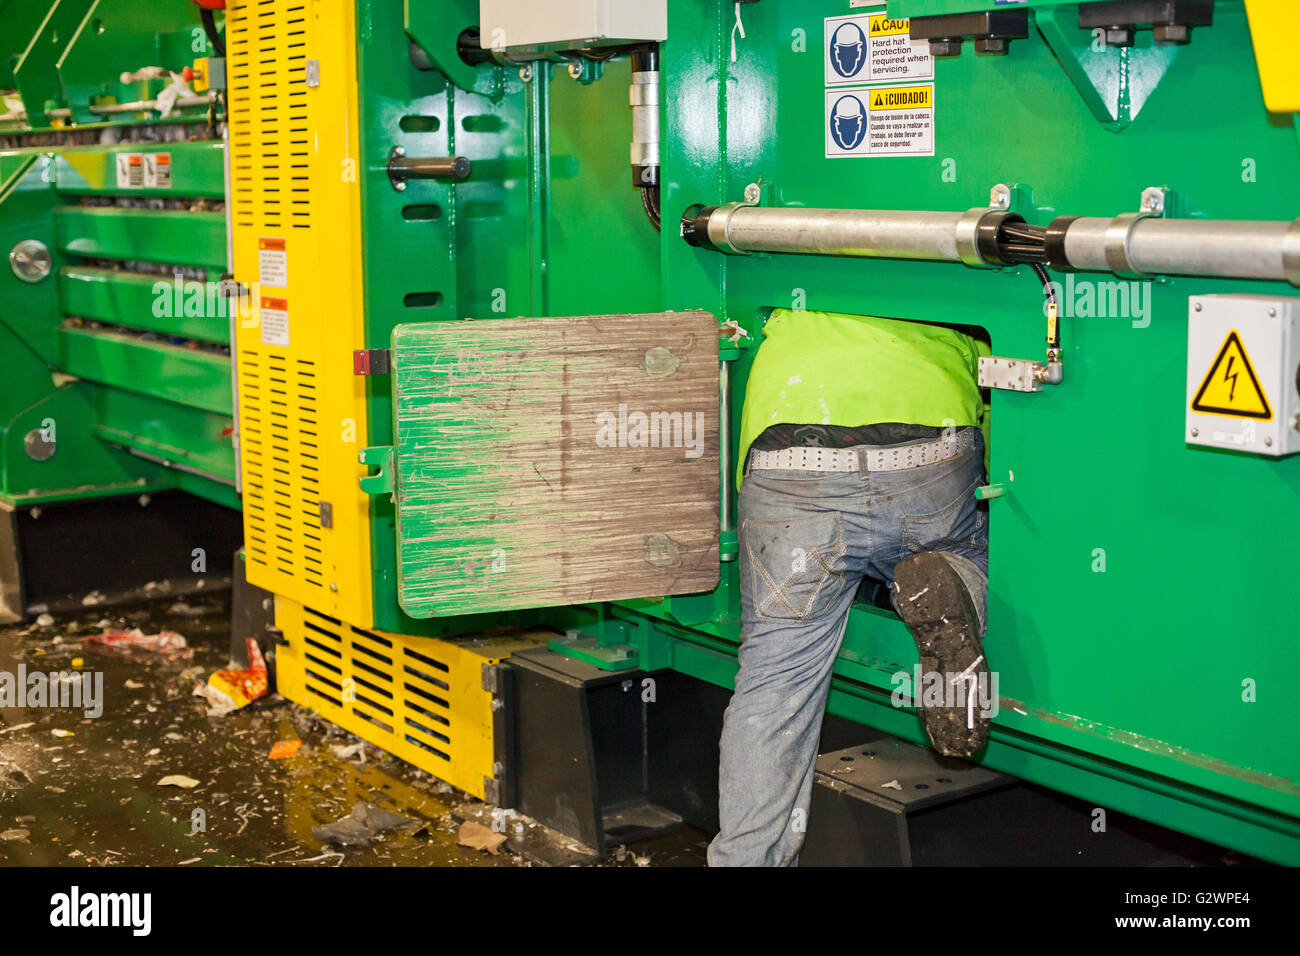 Southfield, Michigan - The ReCommunity materials recovery facility, where recyclable materials are sorted and baled.. - Stock Image